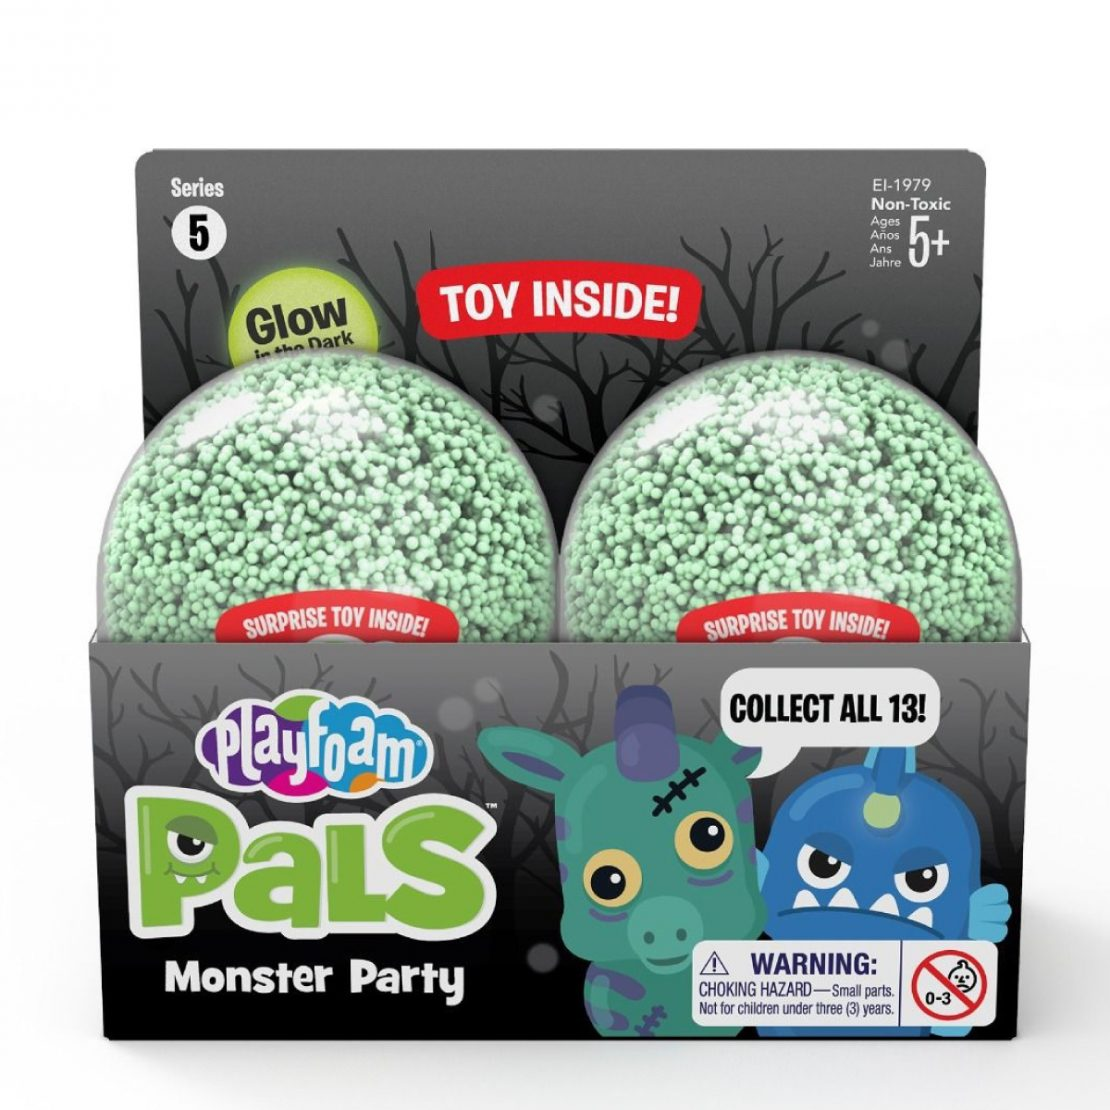 Playfoam Pals Monster Party 2-pack